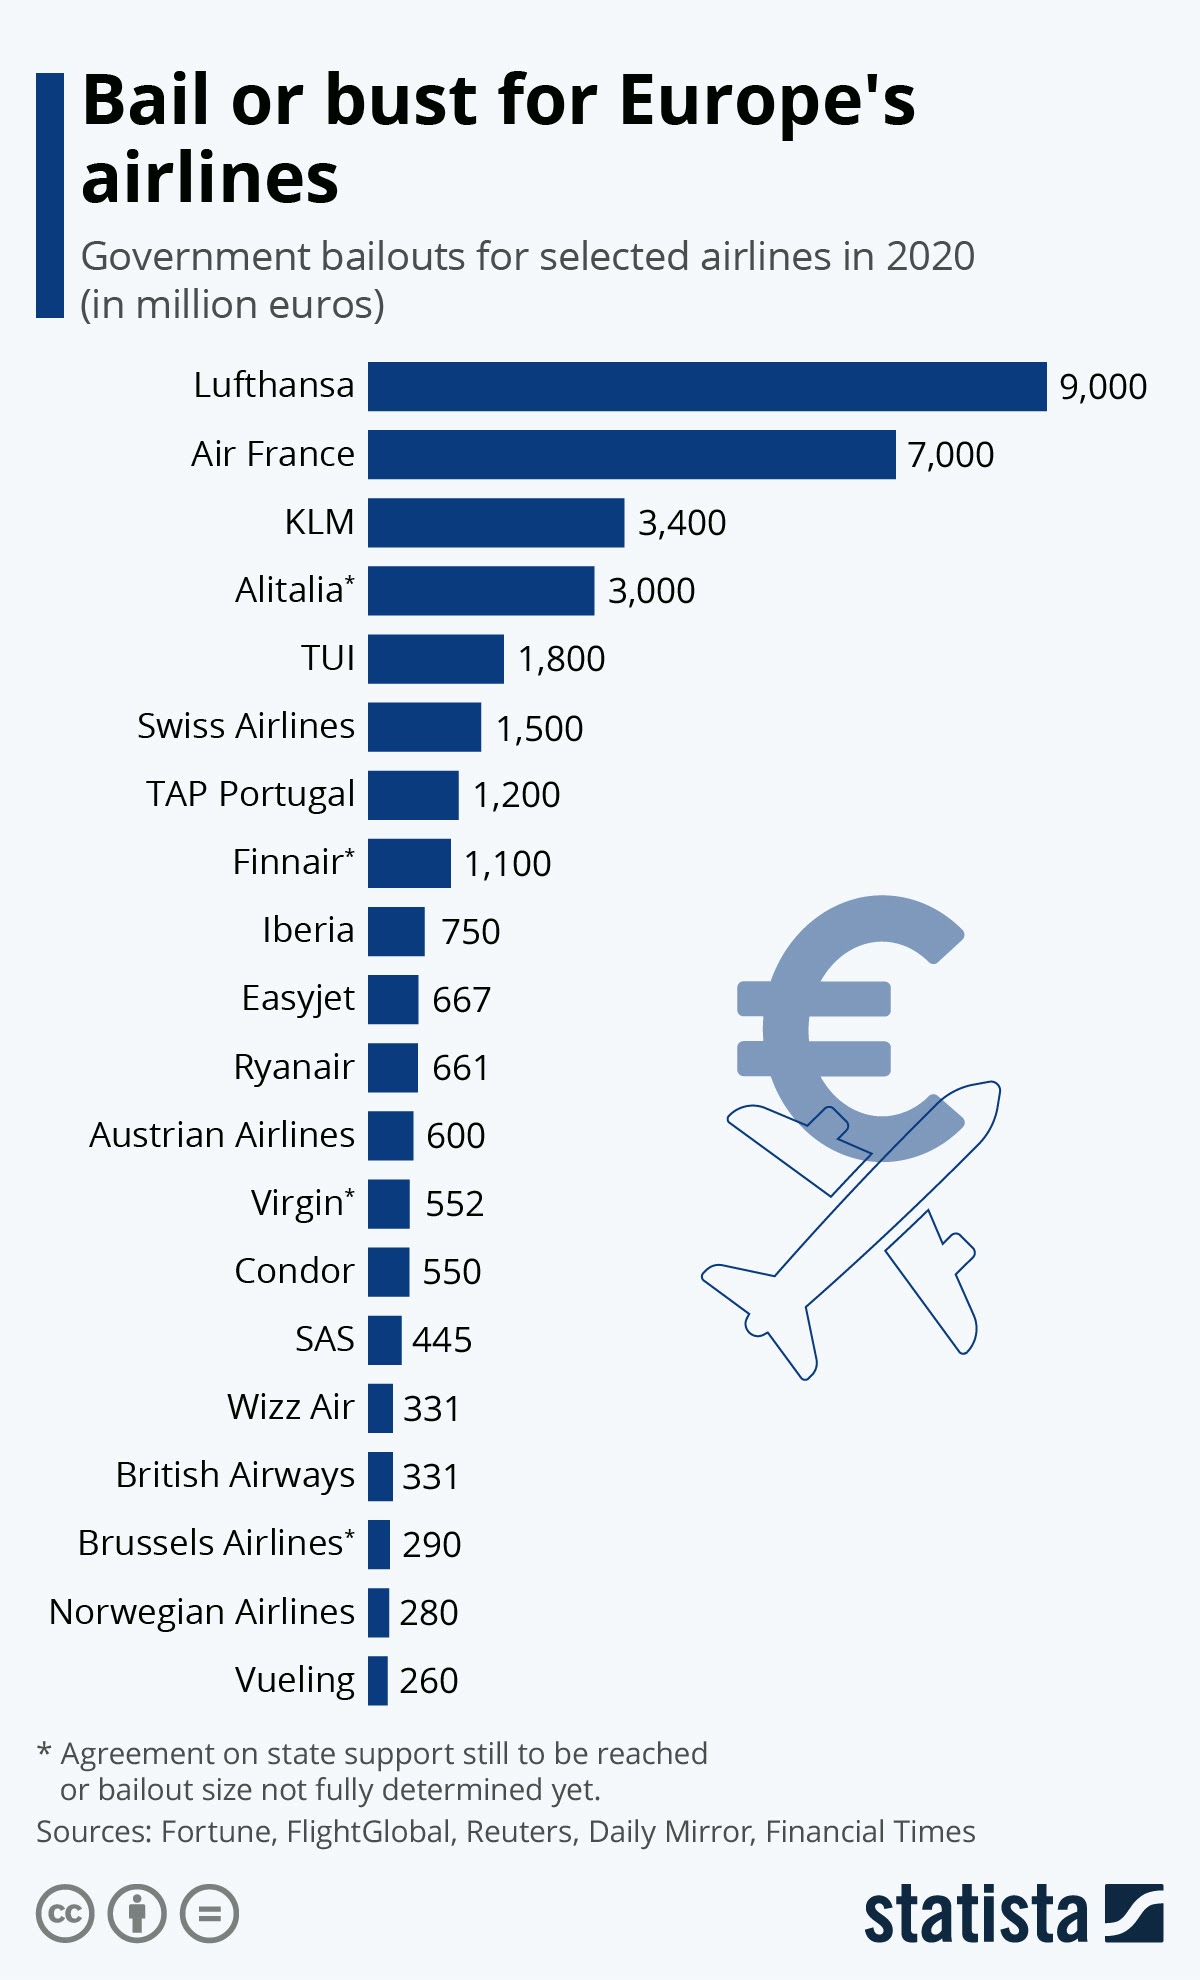 Bail or bust for Europe's airlines #infographic